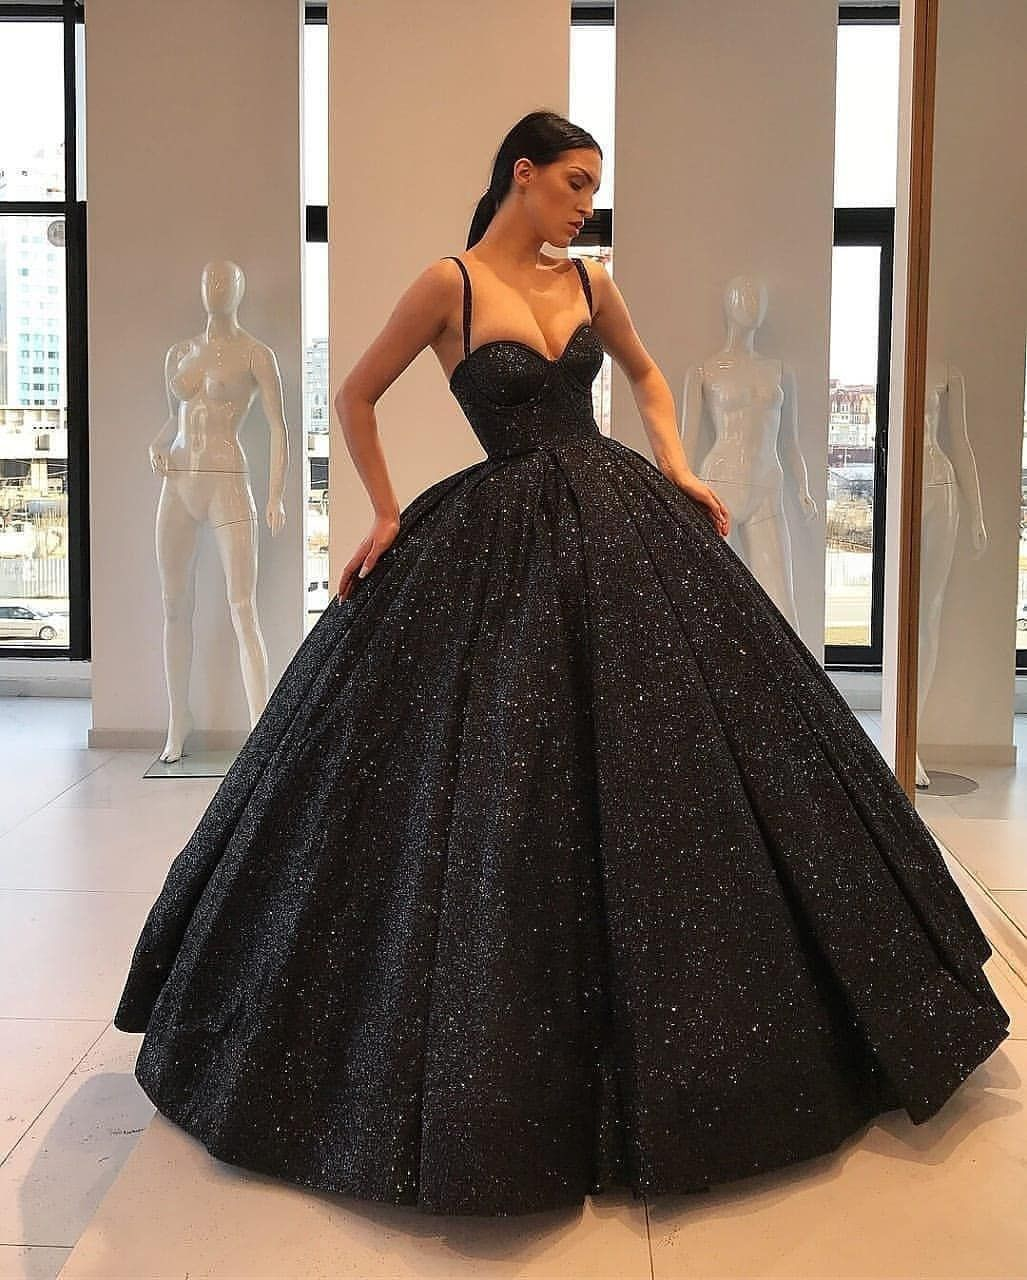 Gorgeous Ball Gown Sweetheart Spaghetti Straps Black Long Prom Dresses With Pockets Sparkly Quinceanera D Black Ball Gown Ball Gowns Prom Dresses With Pockets [ 1280 x 1027 Pixel ]